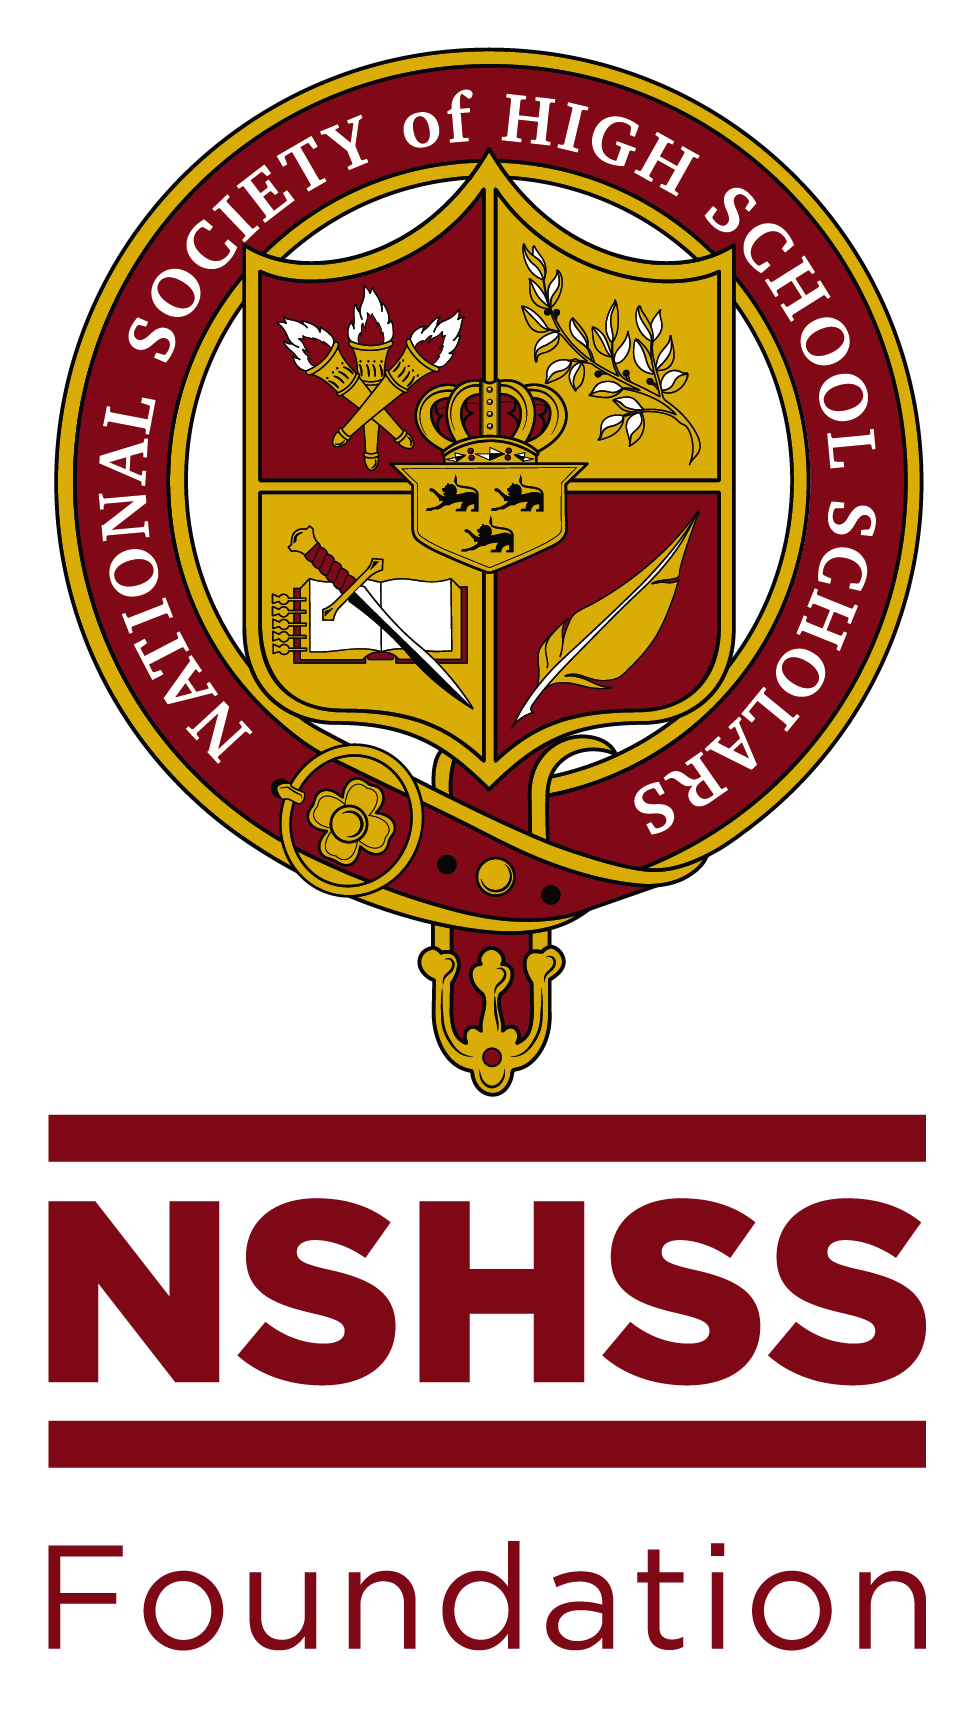 NSHSS Foundation